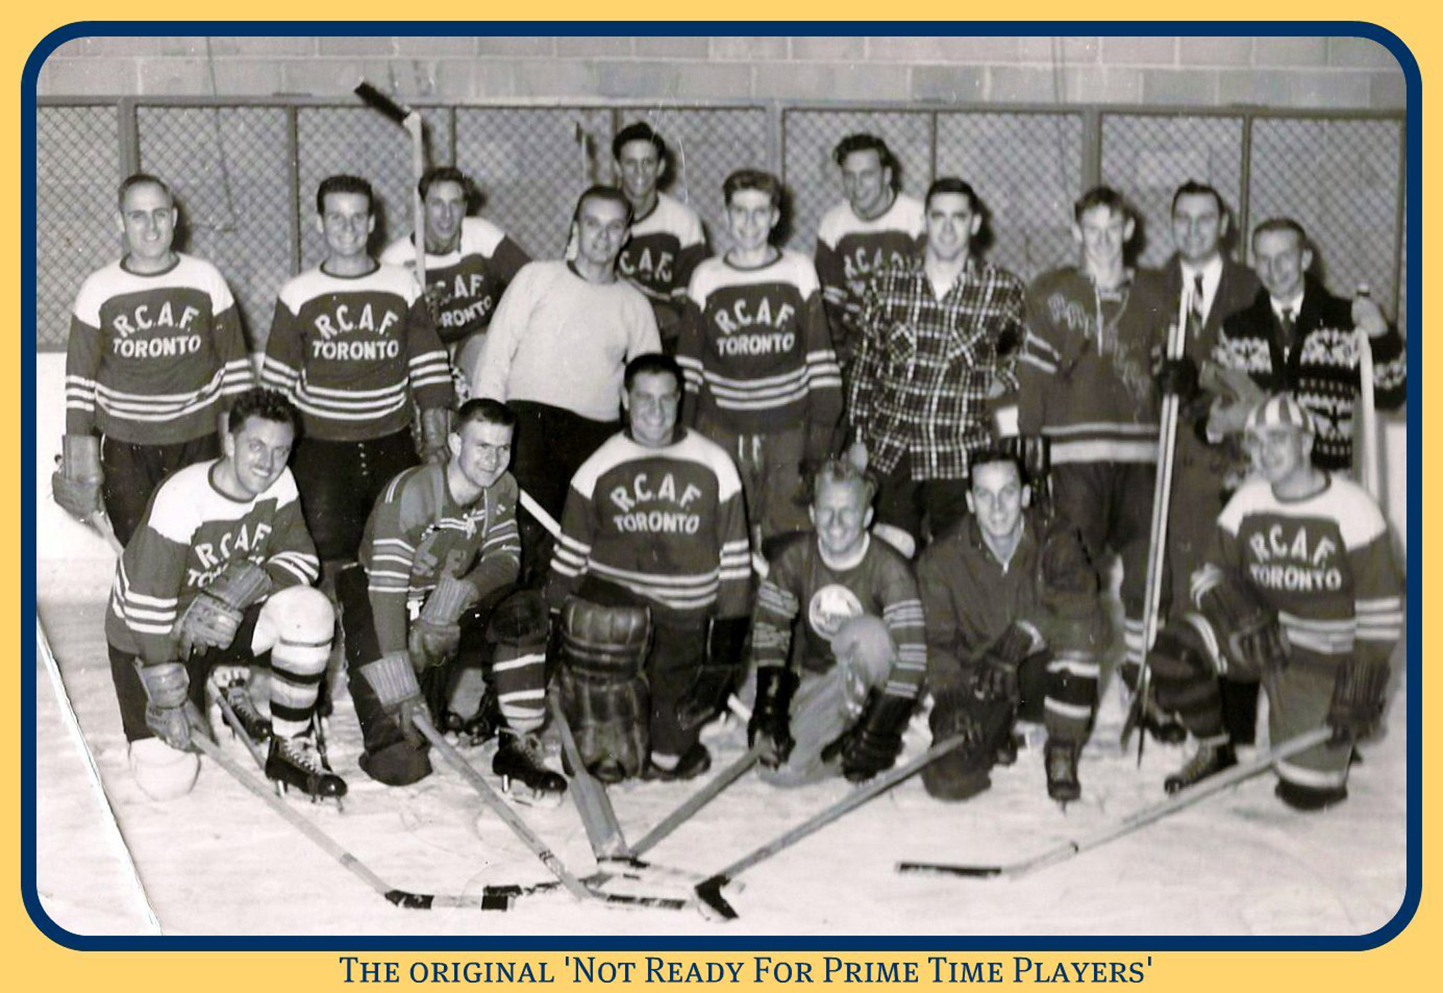 « The Original 'Not Ready For Prime Time Players.' » L'équipe de hockey de la base des Forces canadiennes Downsview. PHOTO : 400 et 411e Escadrons, Downsview Life https://get.google.com/albumarchive/106746528070391002095/album/AF1QipN-PYQGzXSGUulMgdbMOg1ritloTh4FqLi_sK87